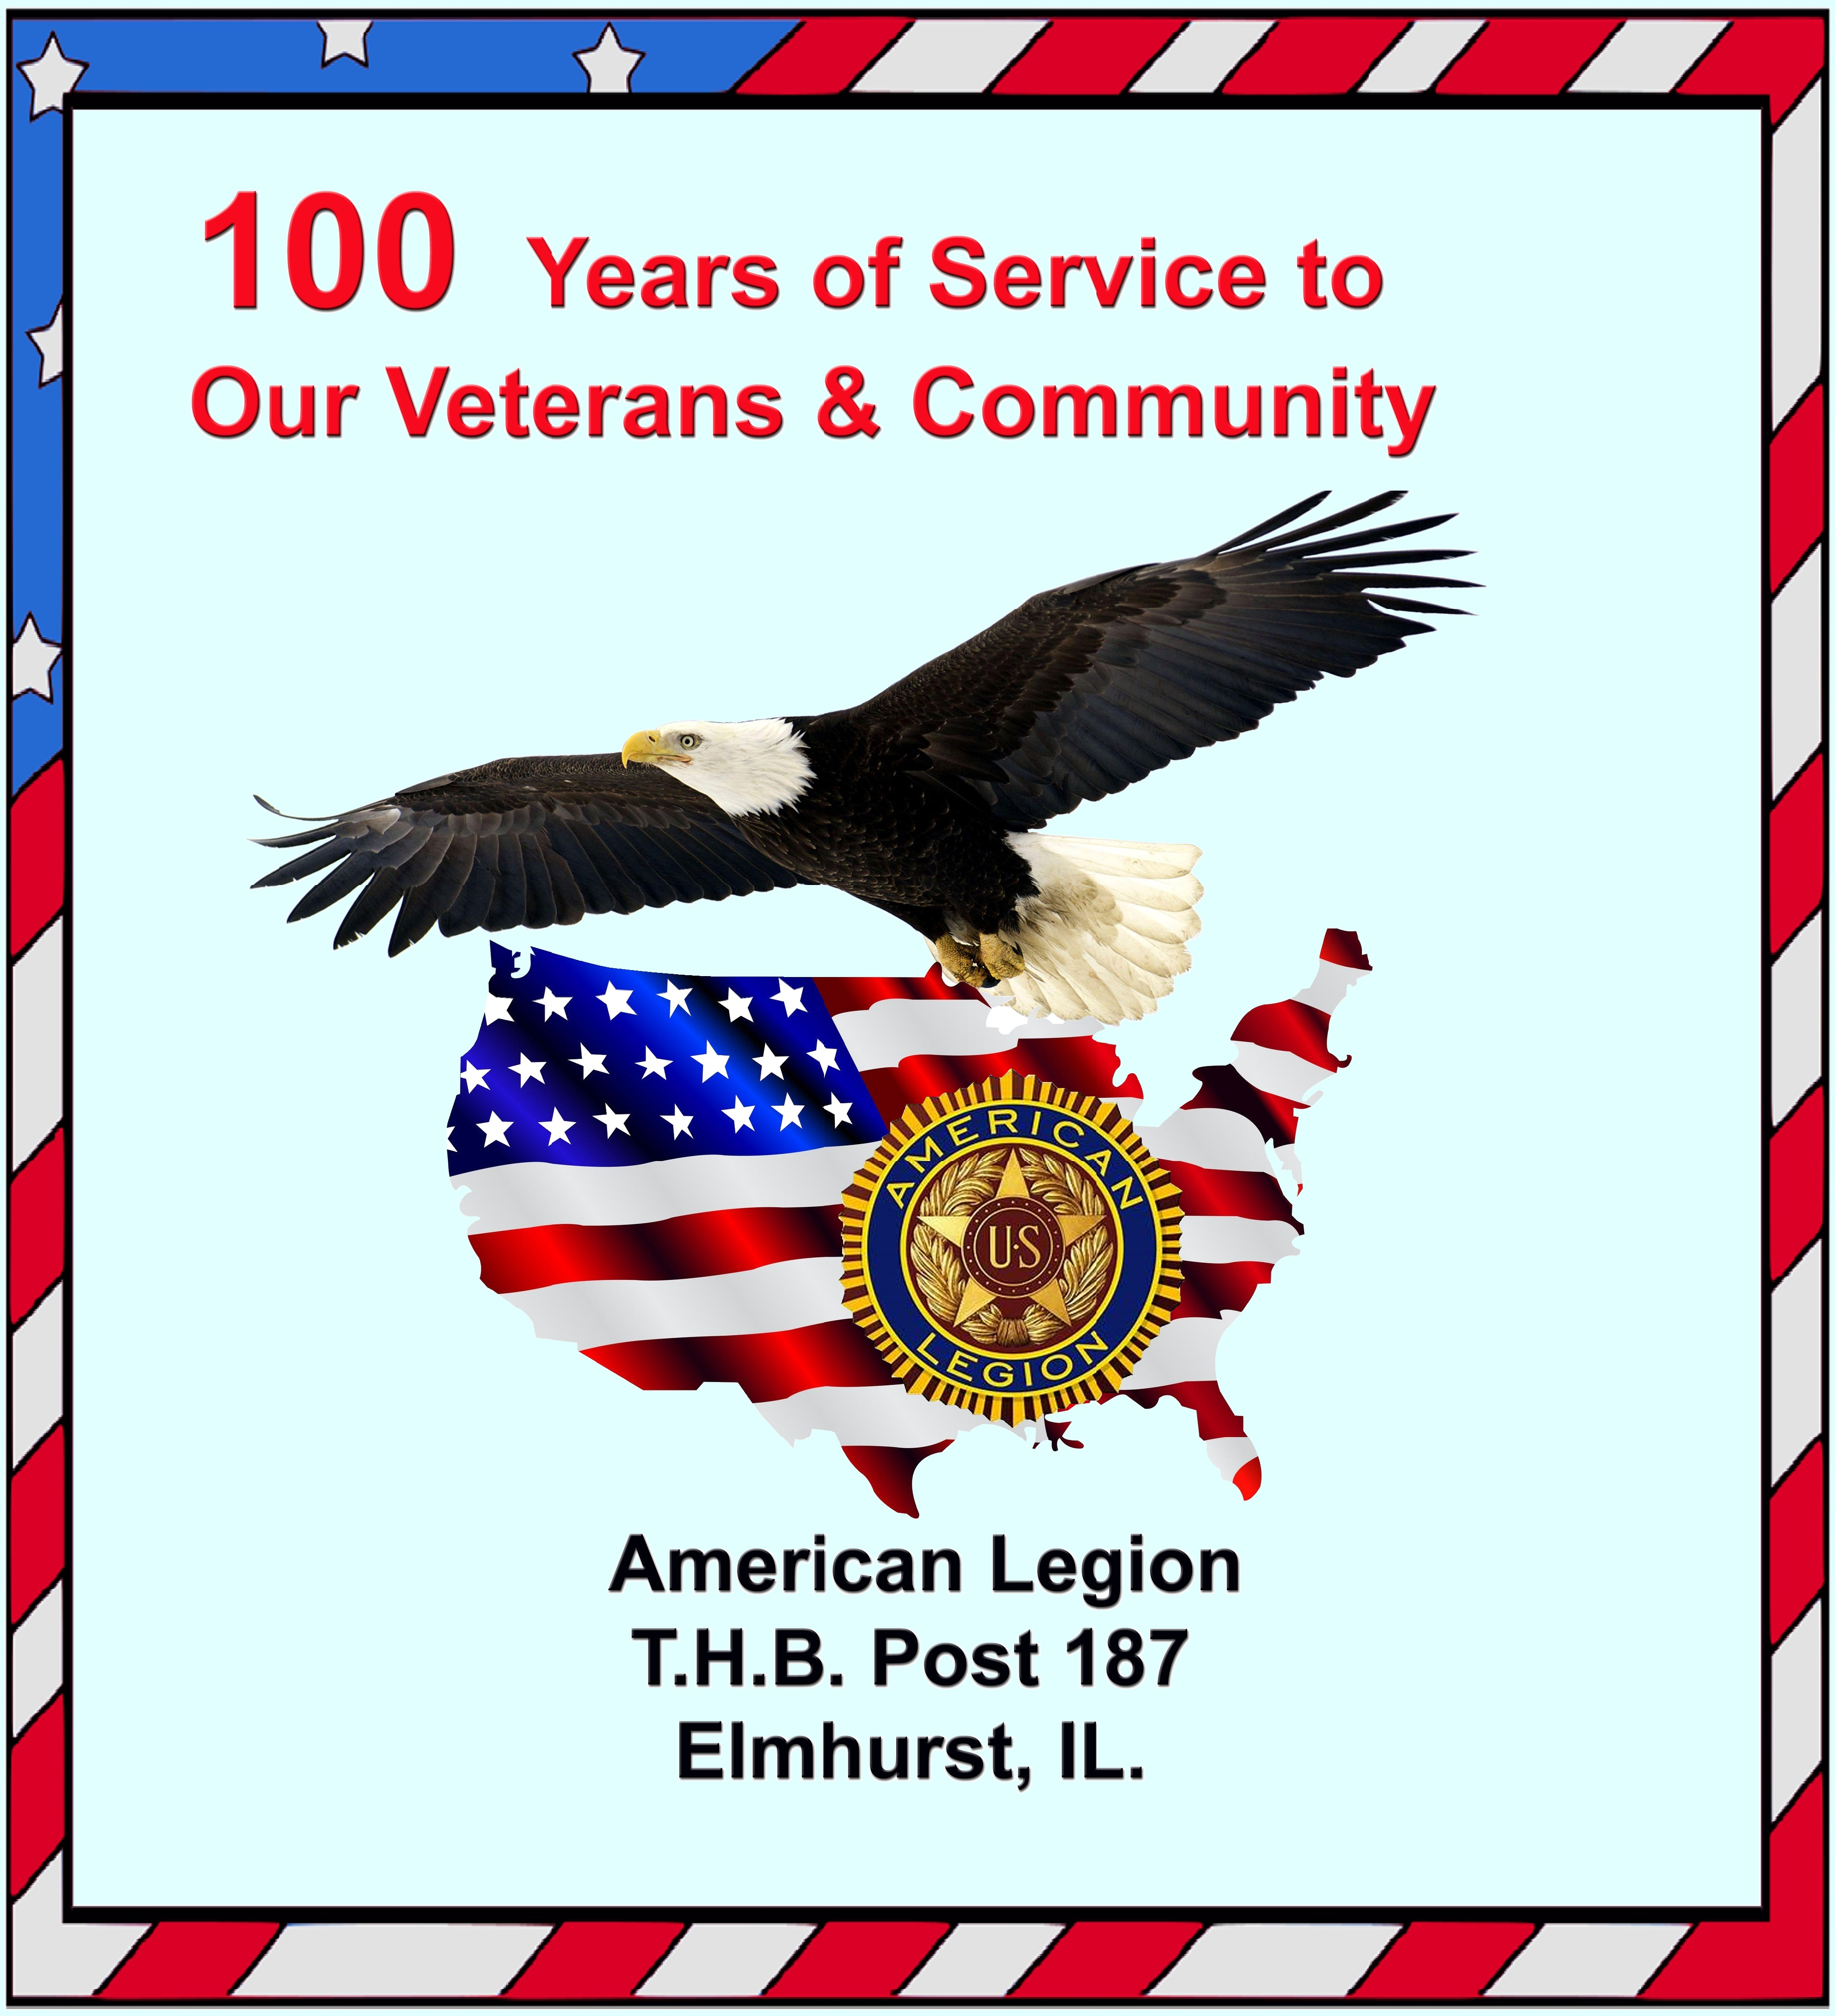 American Legion 100th Year in service to vets and community